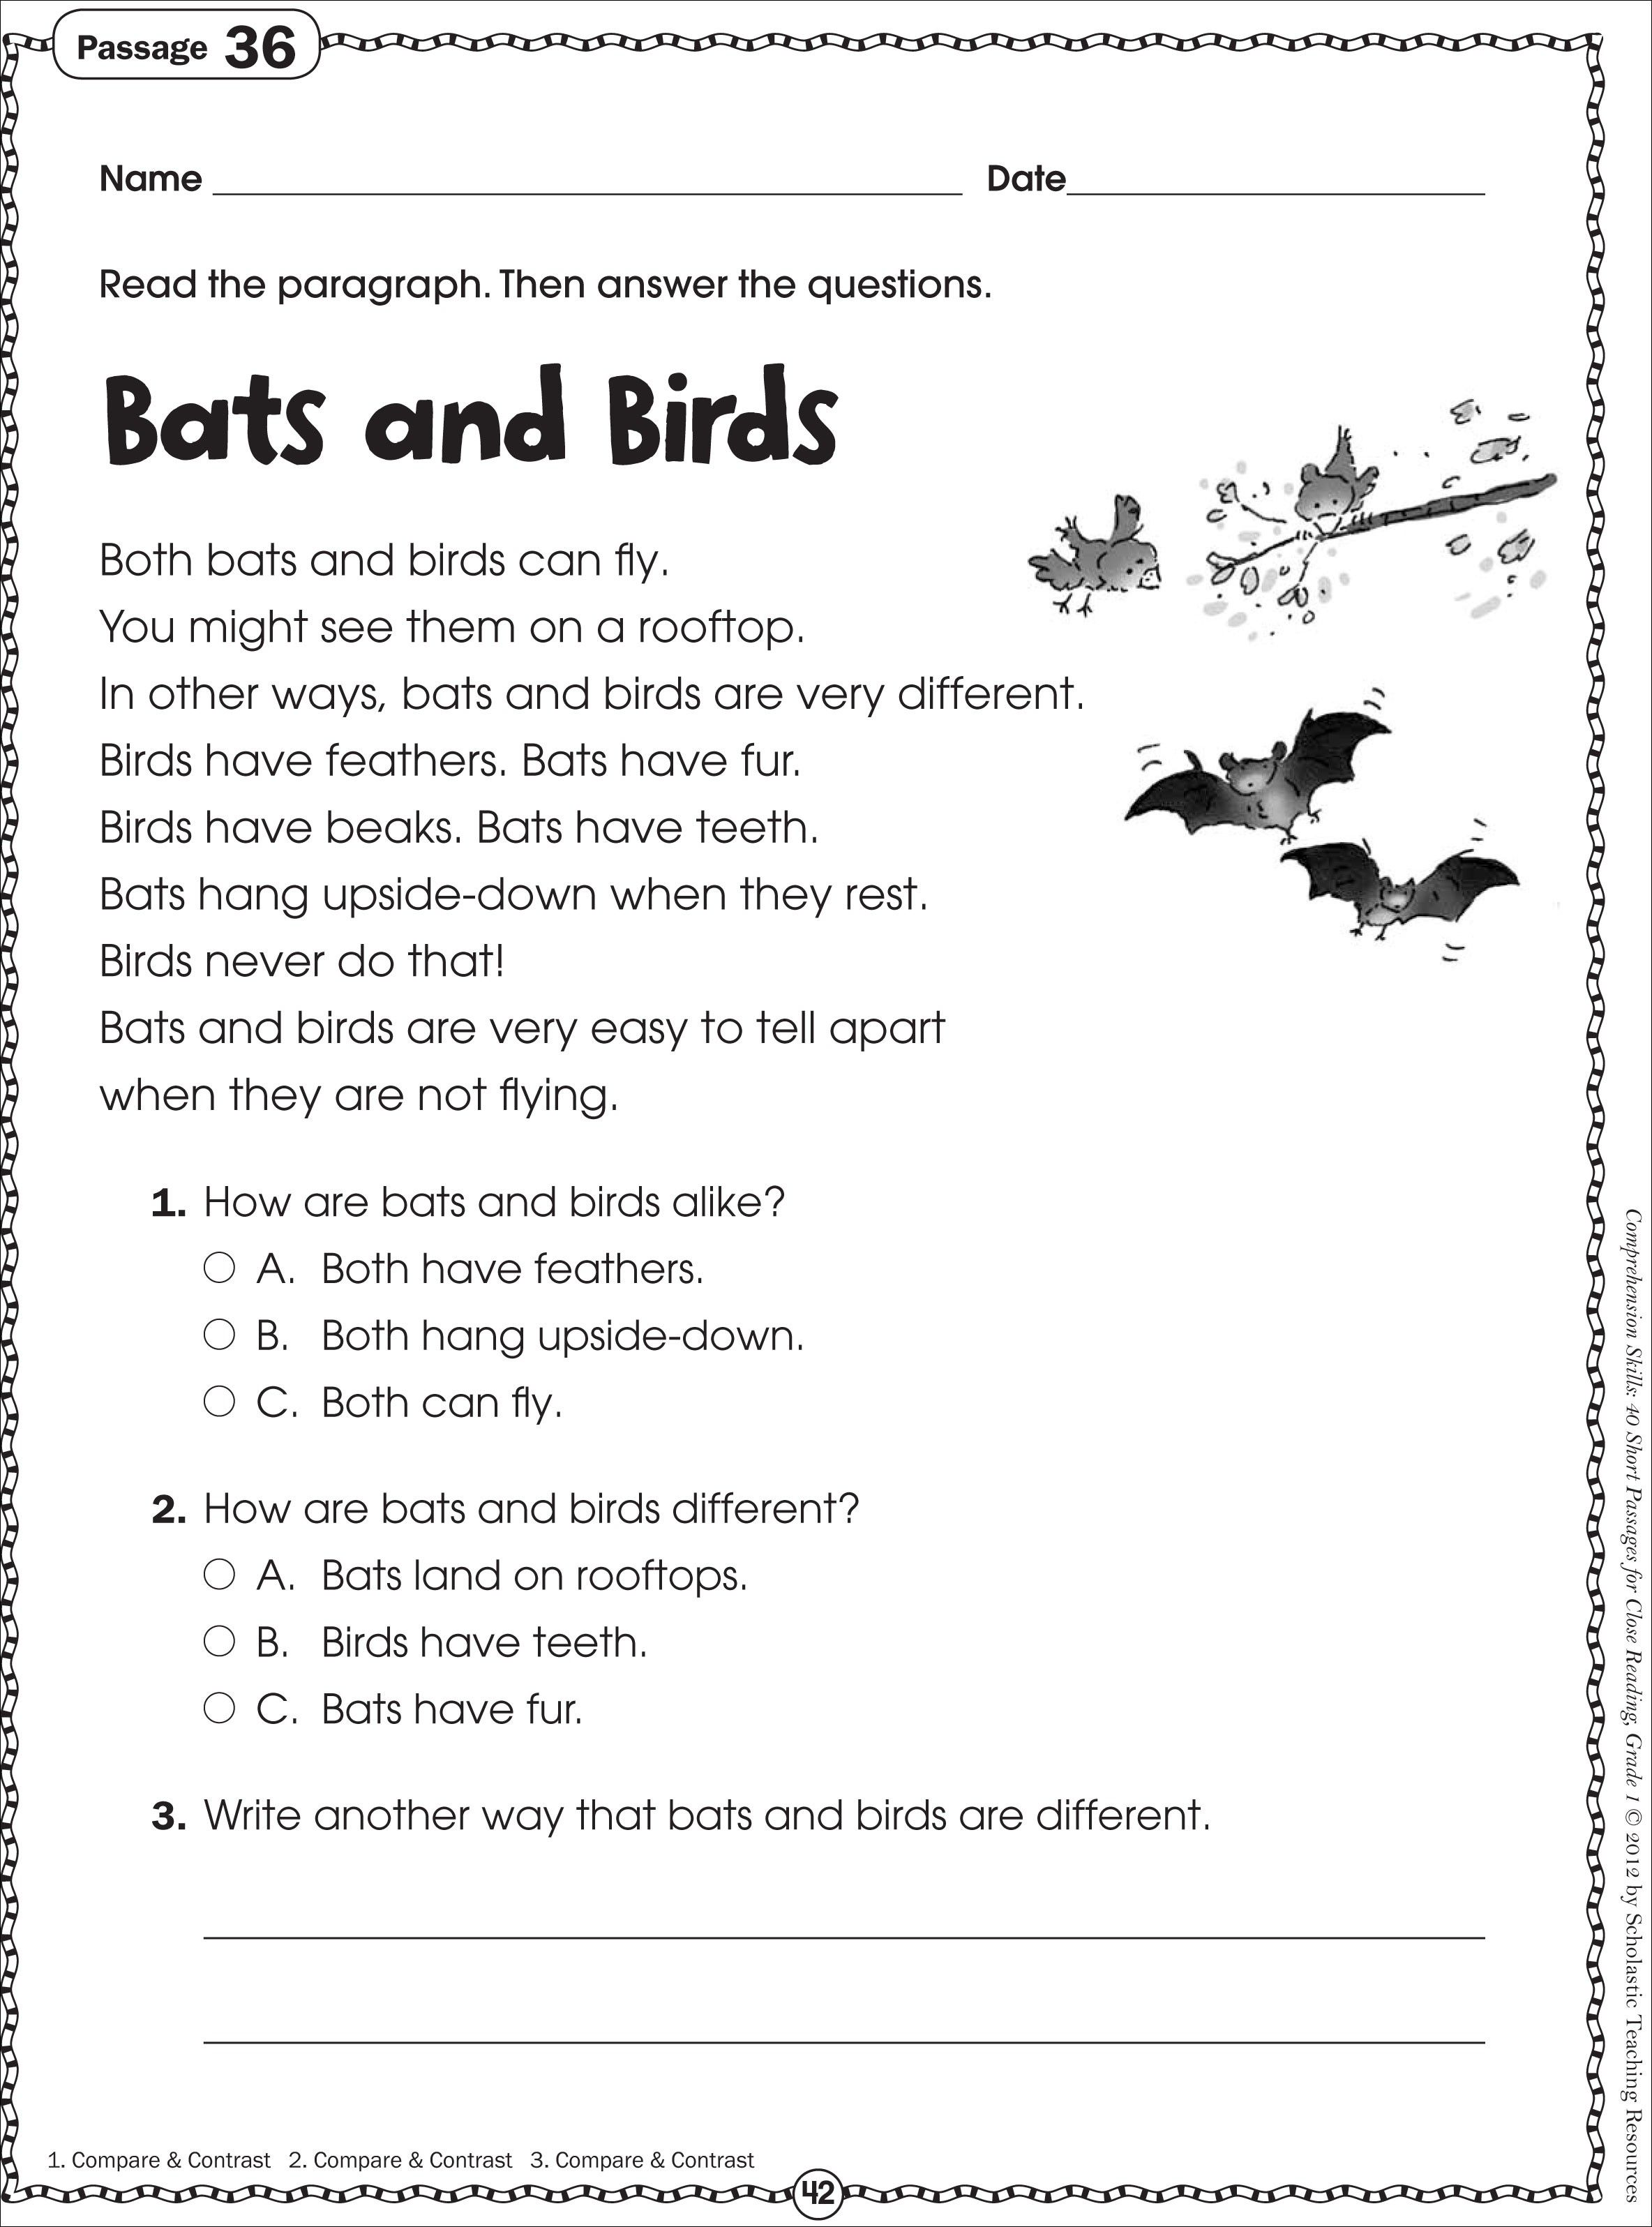 20+ Free printable reading comprehension worksheets for 1st grade Popular